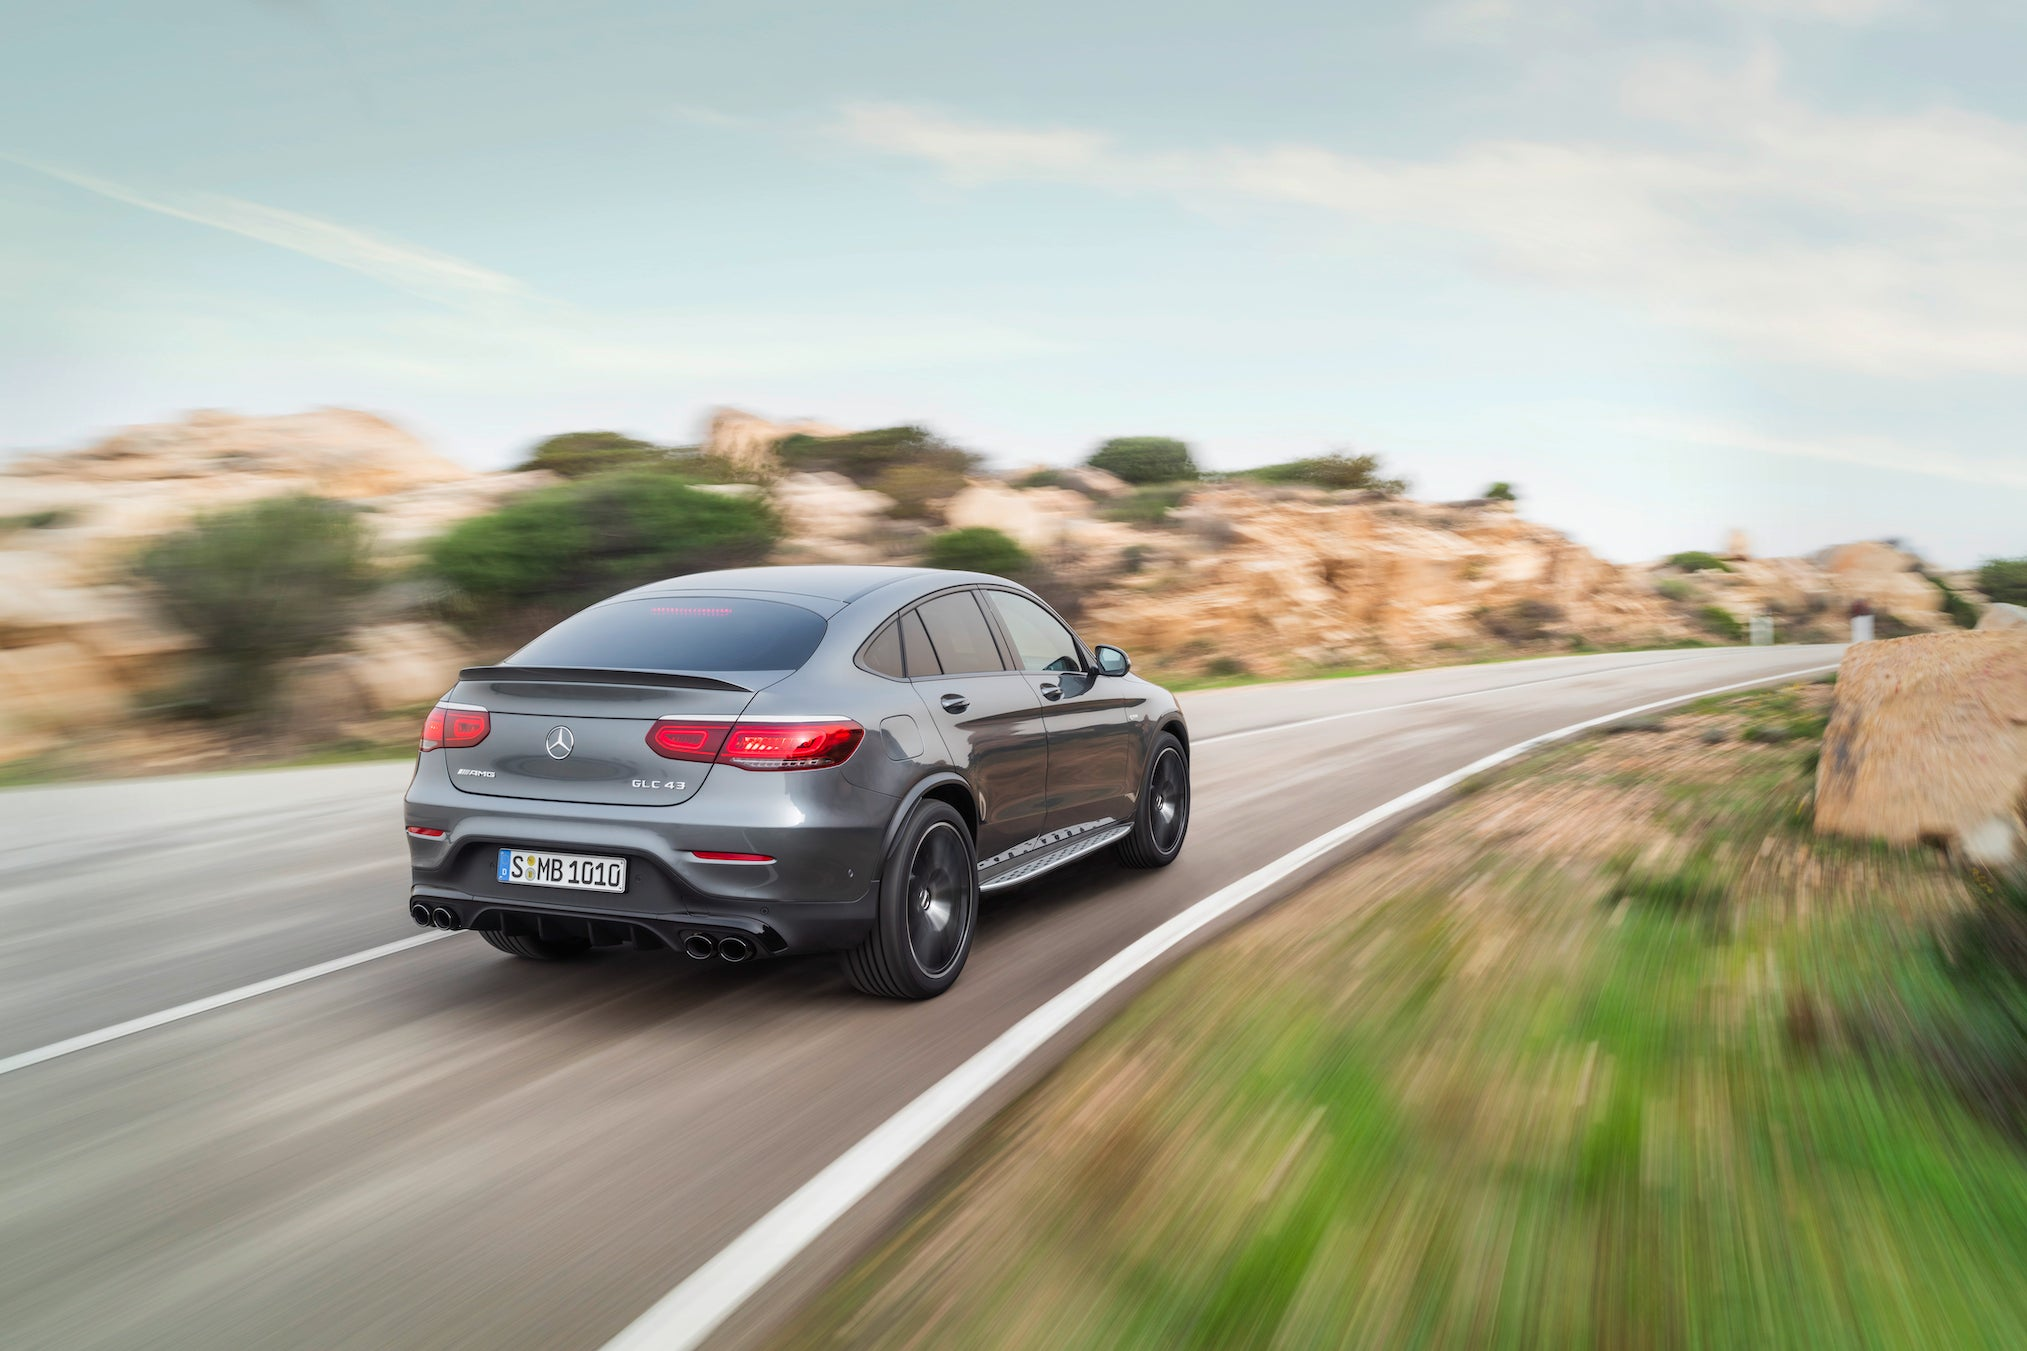 The new Mercedes-AMG GLC 43 4MATIC models